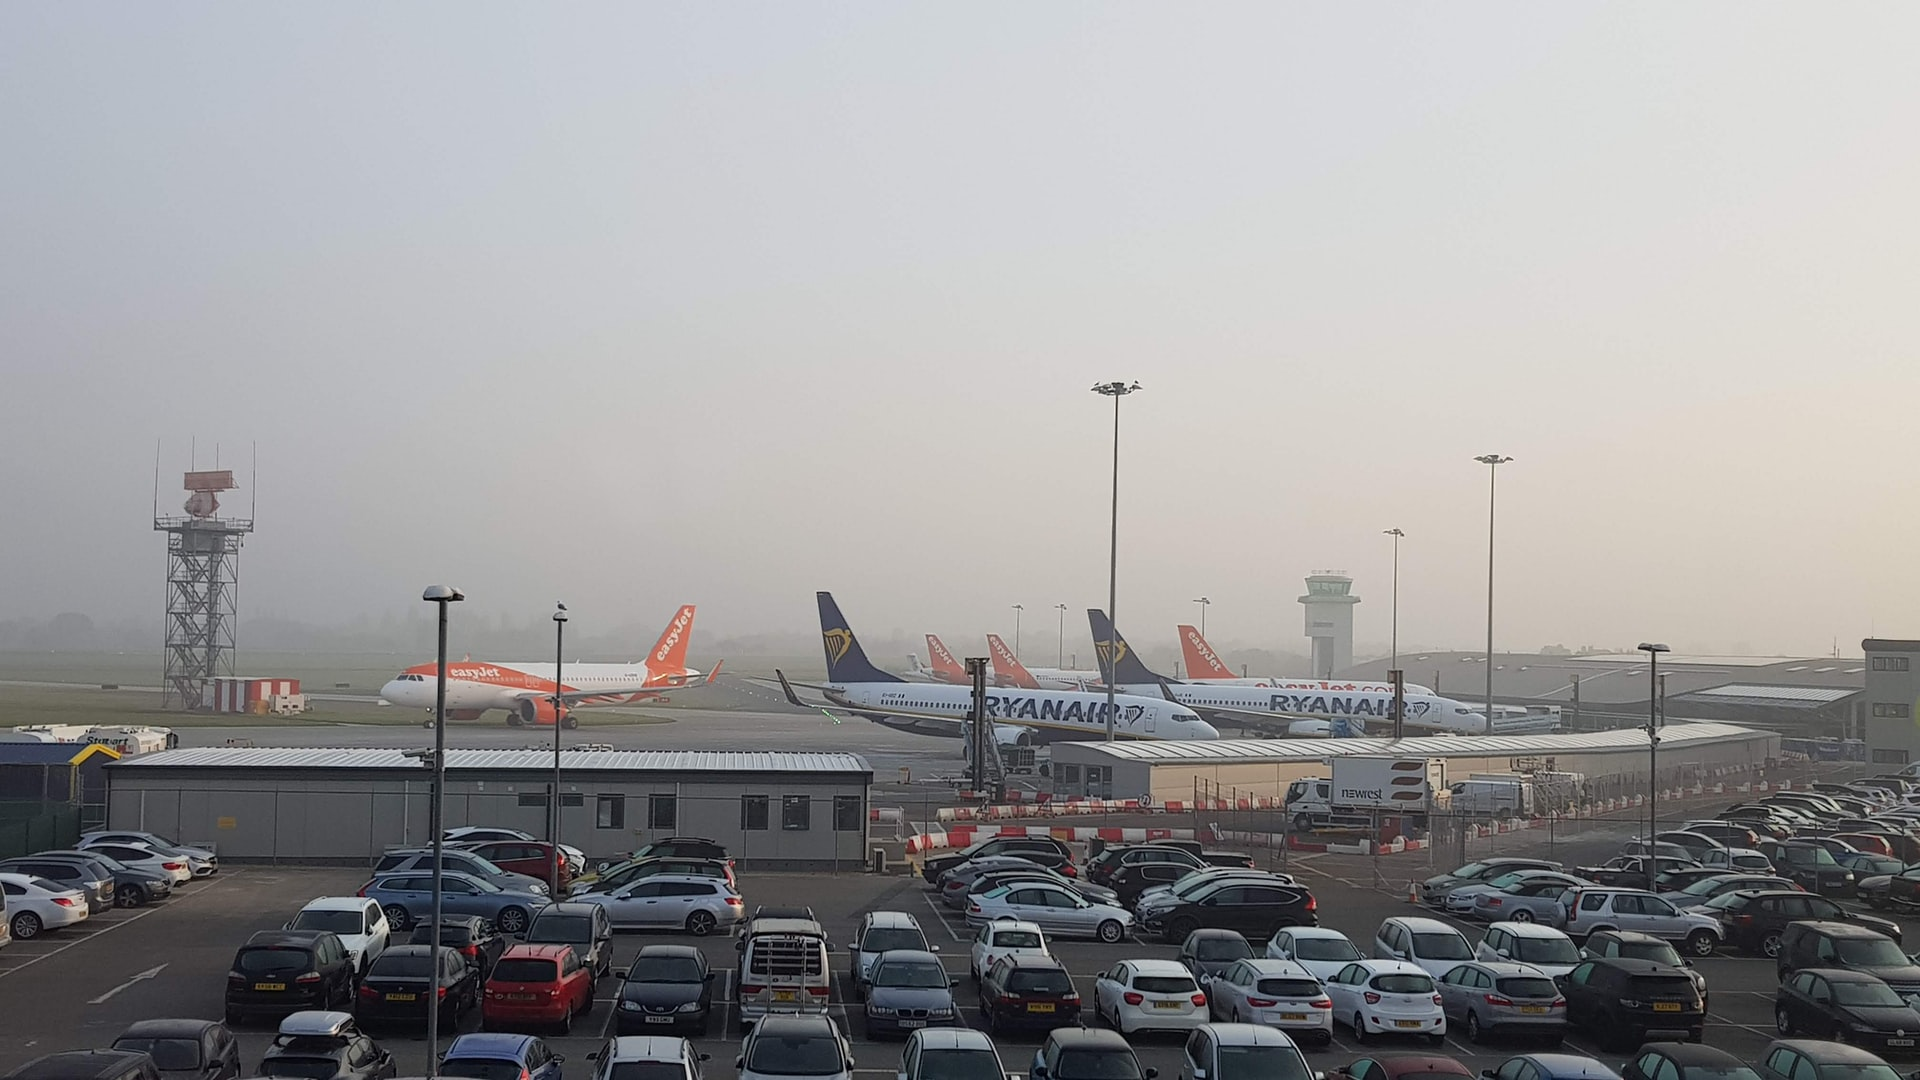 Airport Parking Hacks Every Traveller Should Know